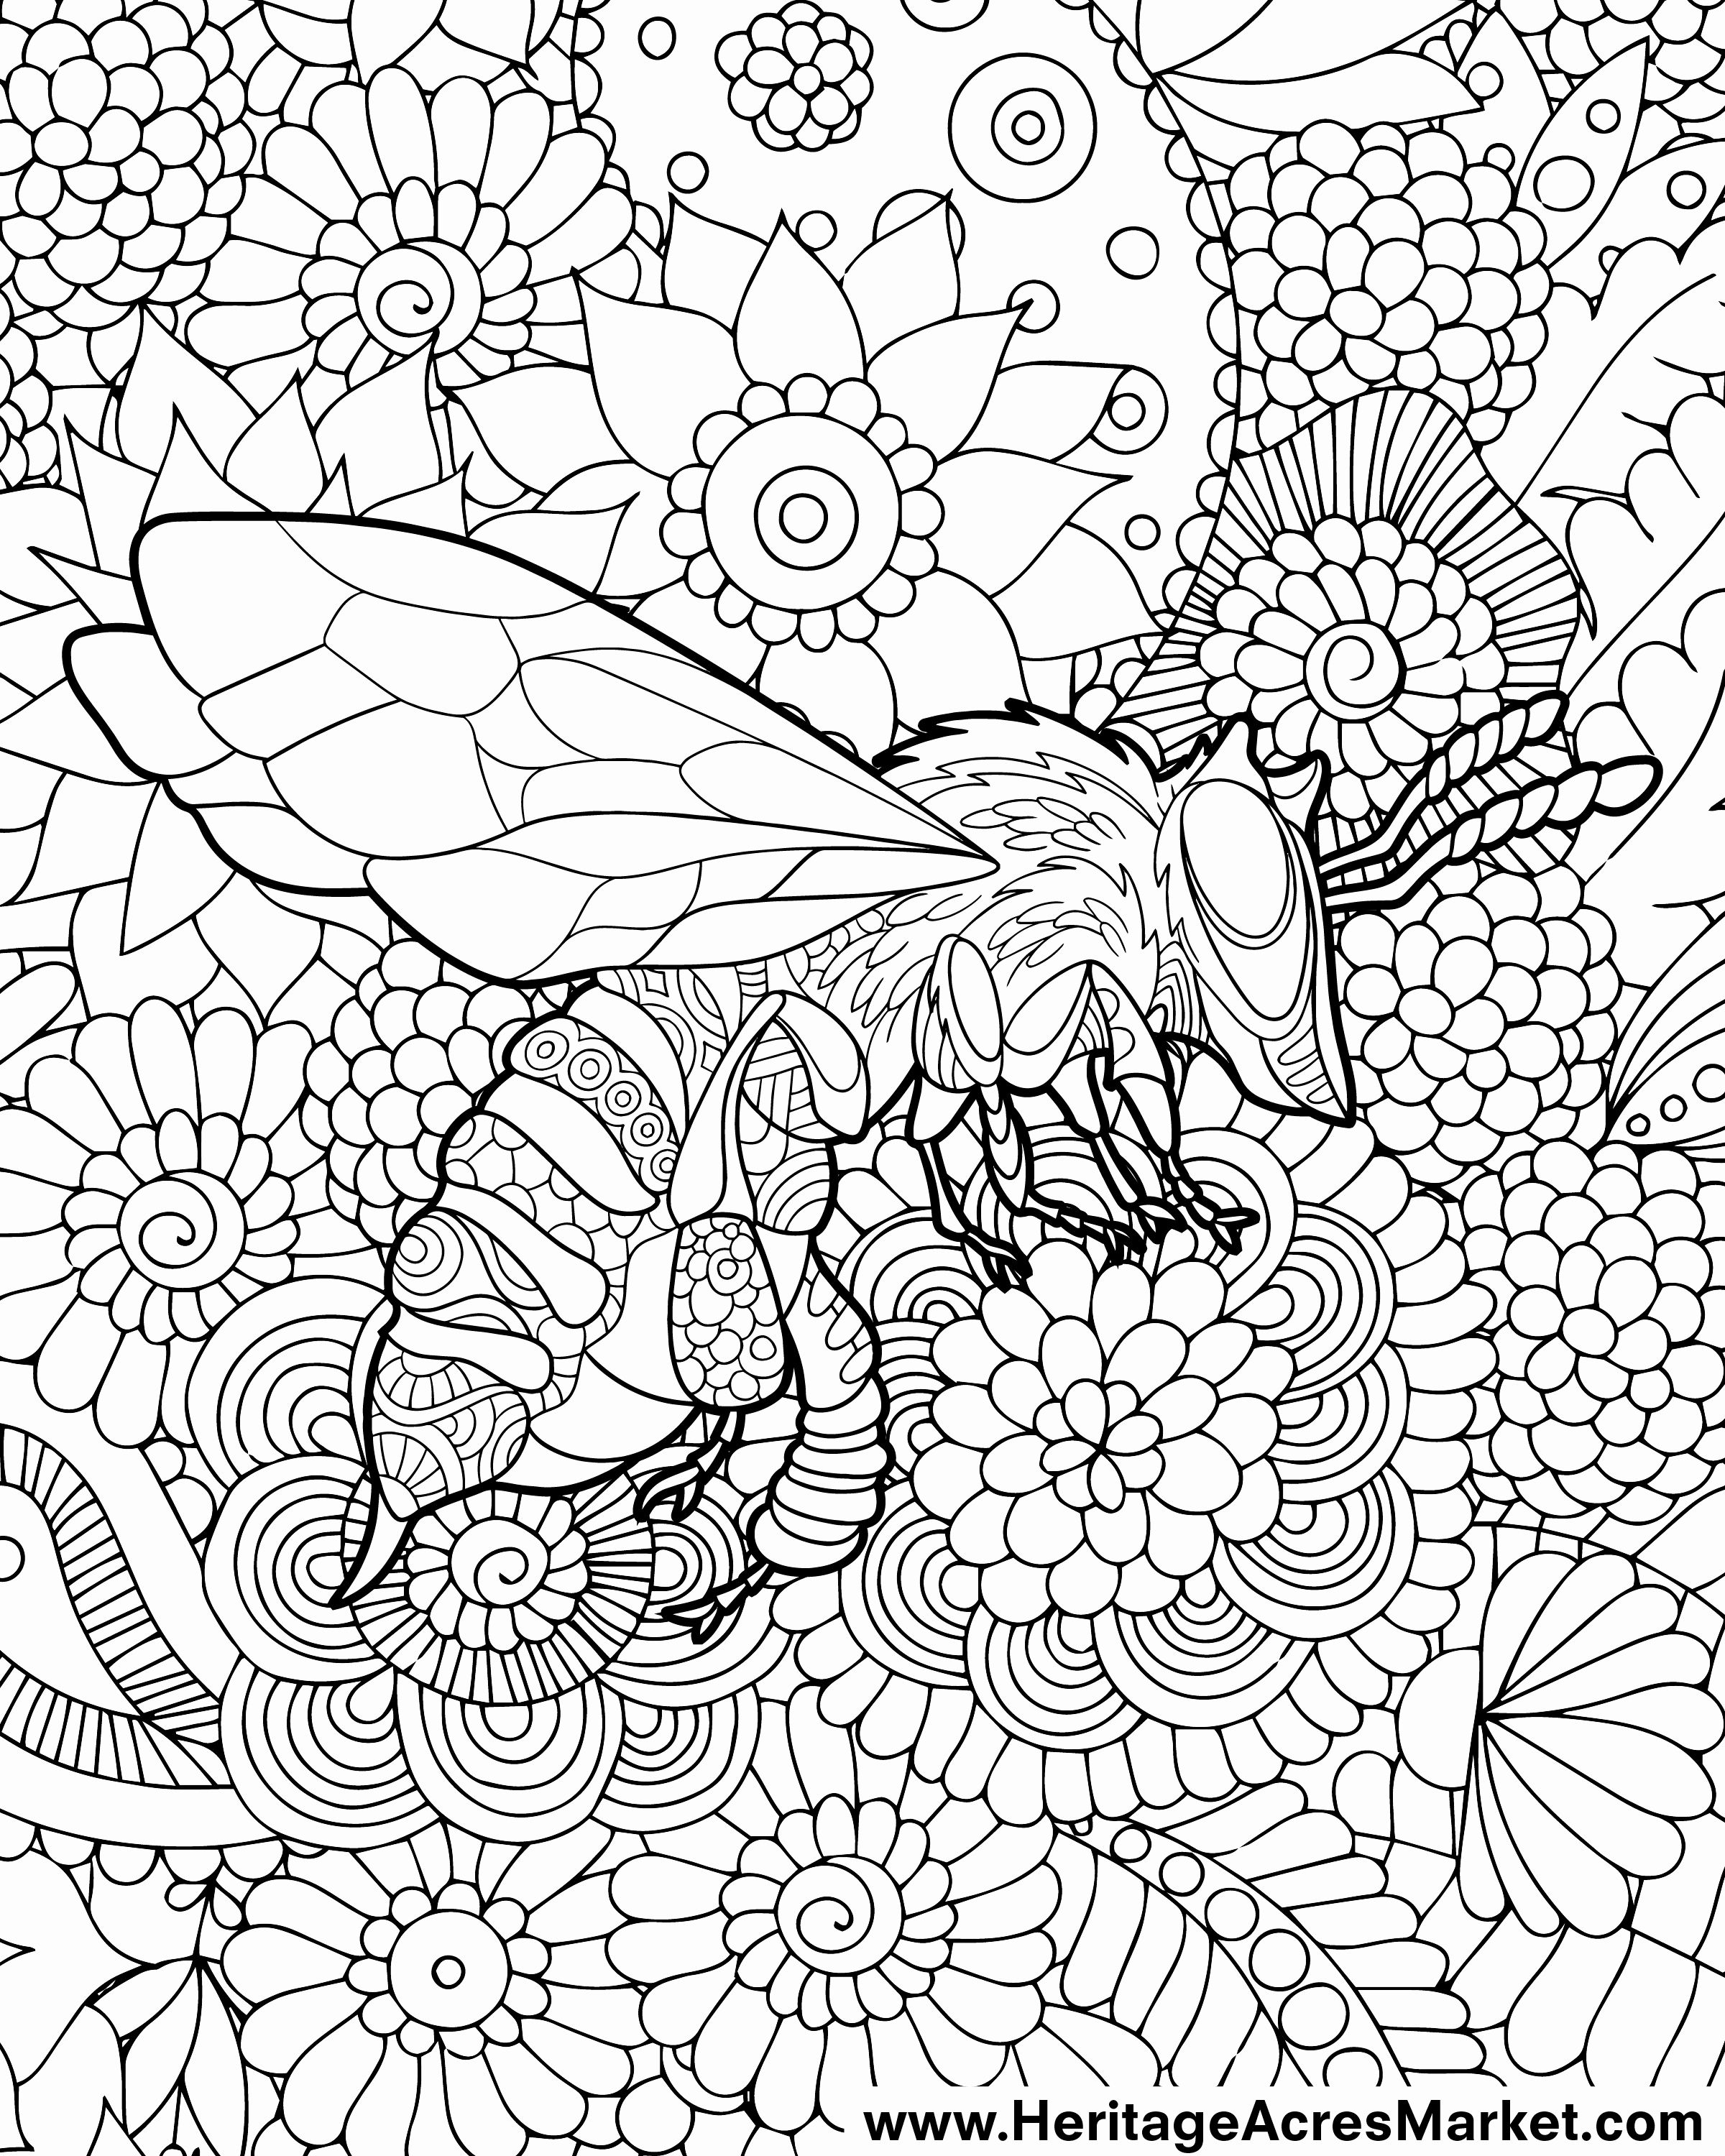 2400x3000 Dog Coloring Page New Free Bee Coloring Pages And More New High